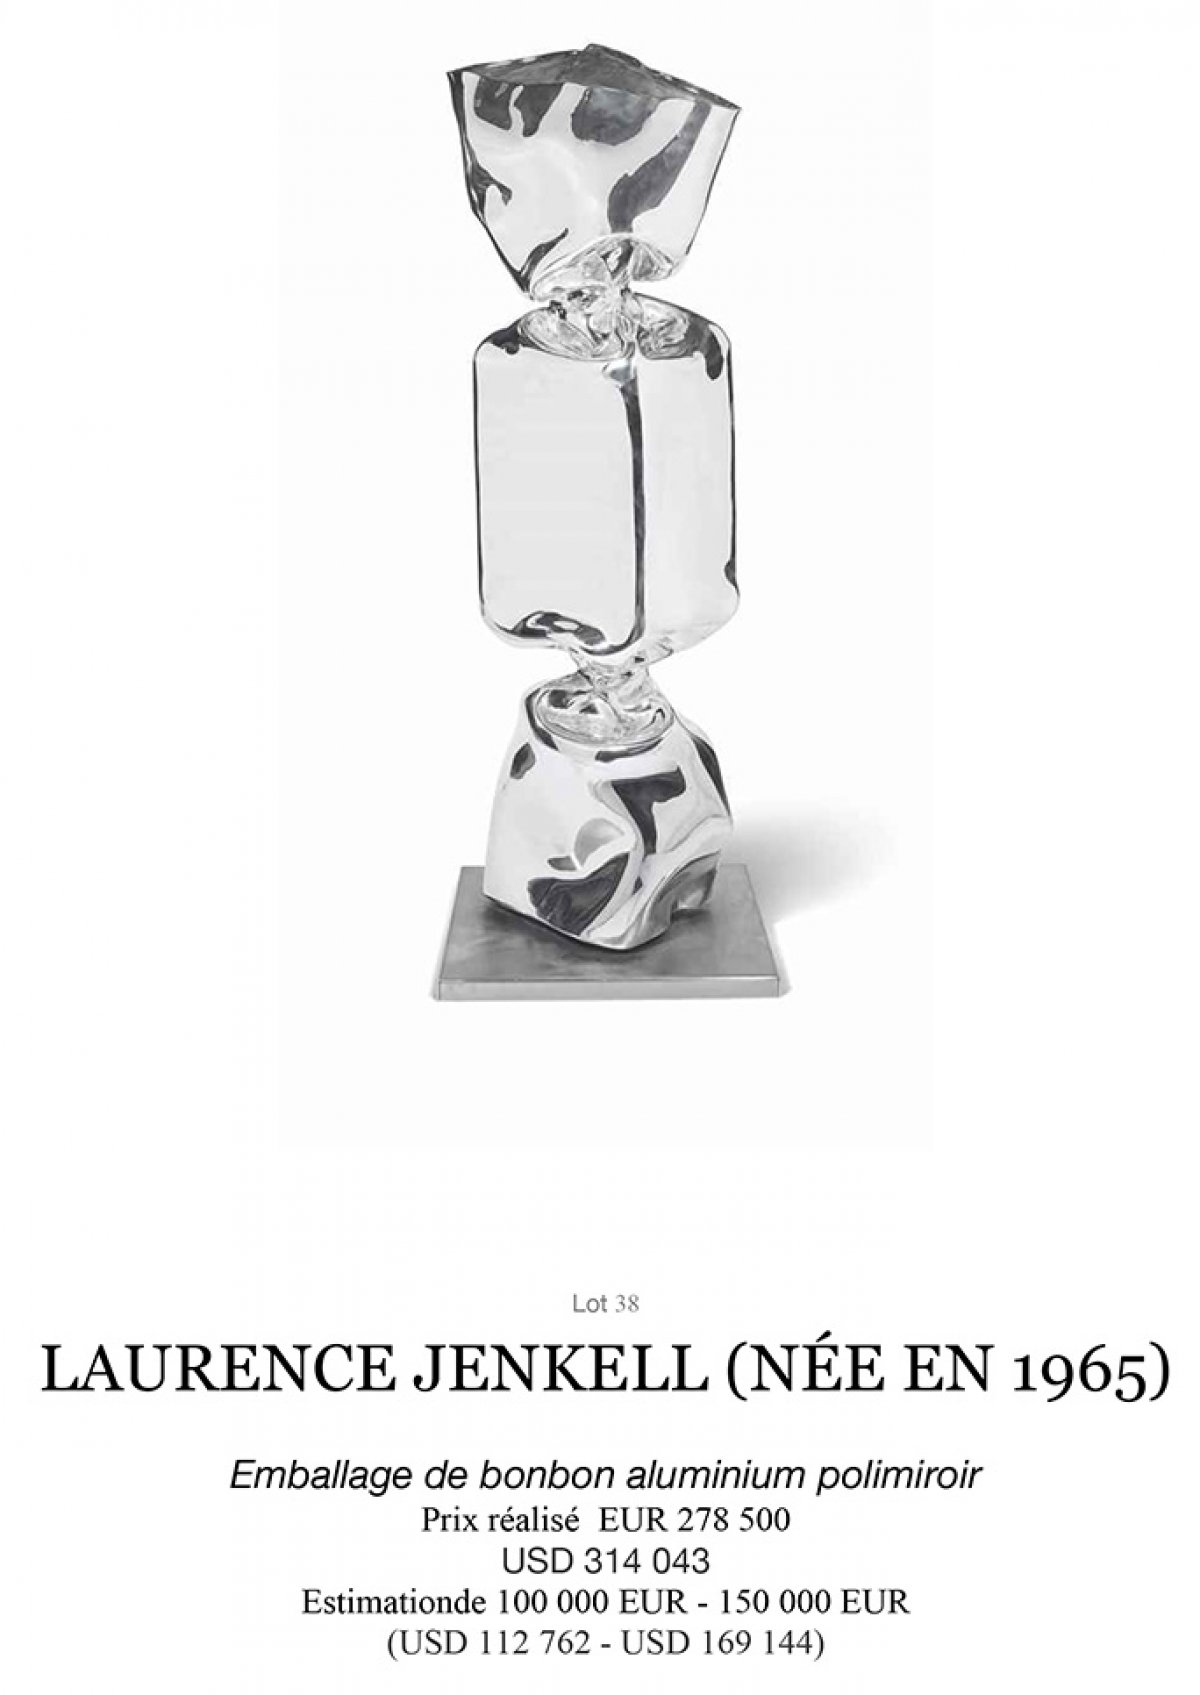 Auction Record for Laurence Jenkell